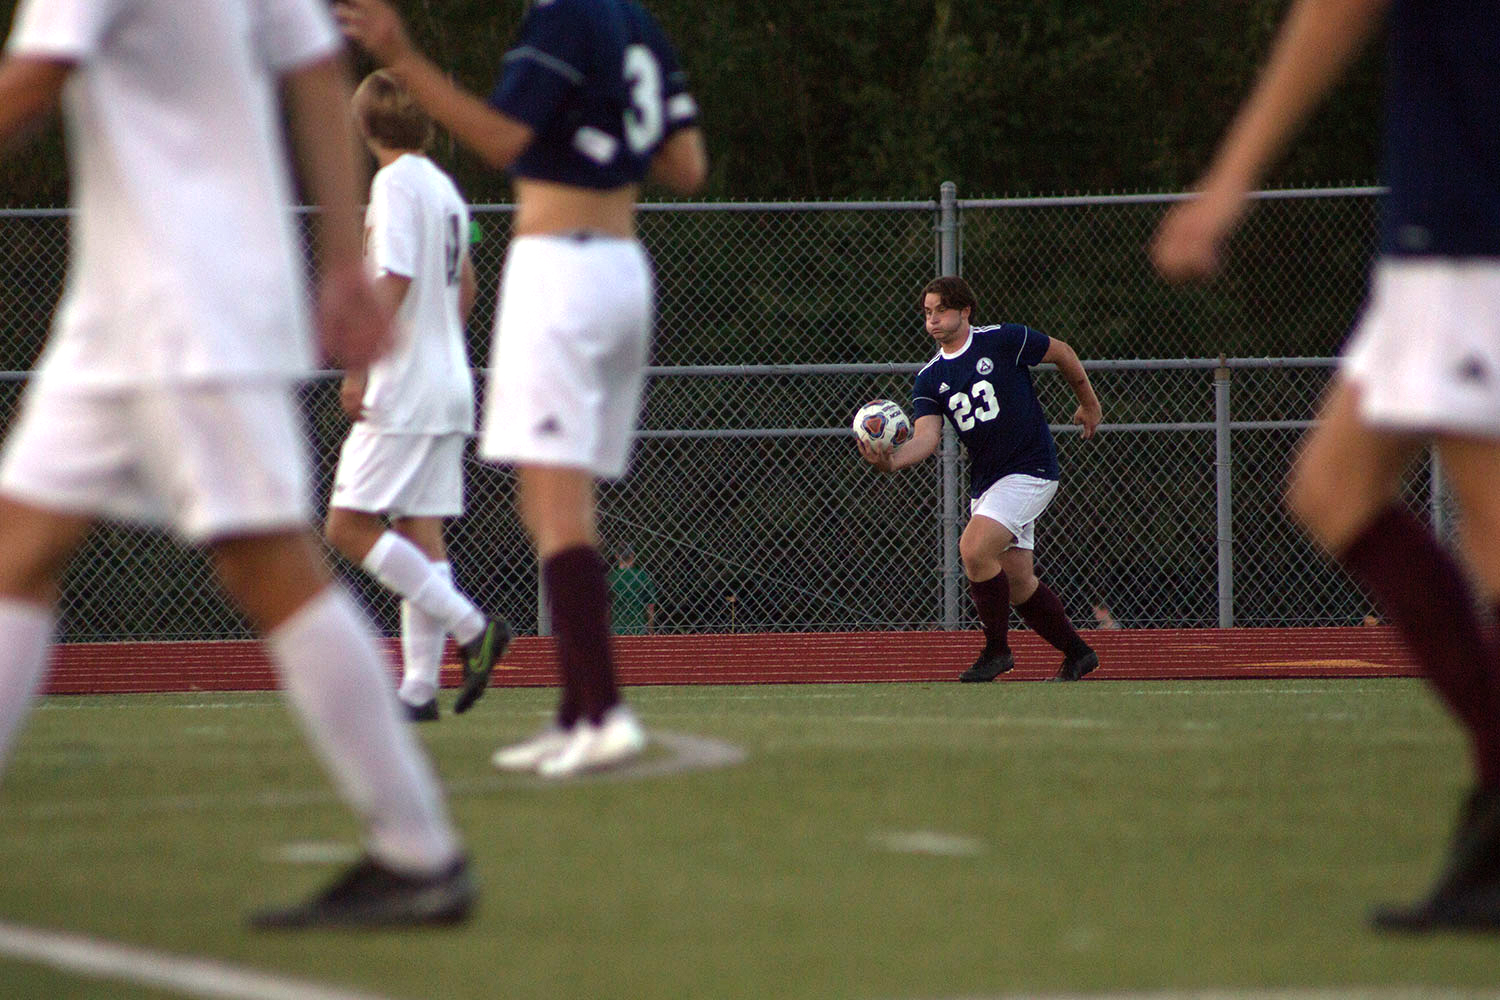 Junior Adam Donnell prepares to take a throw in at the FHC vs. Vianney game. Donnell is one of two players on the team that has a long throw which is an advantage to the team.